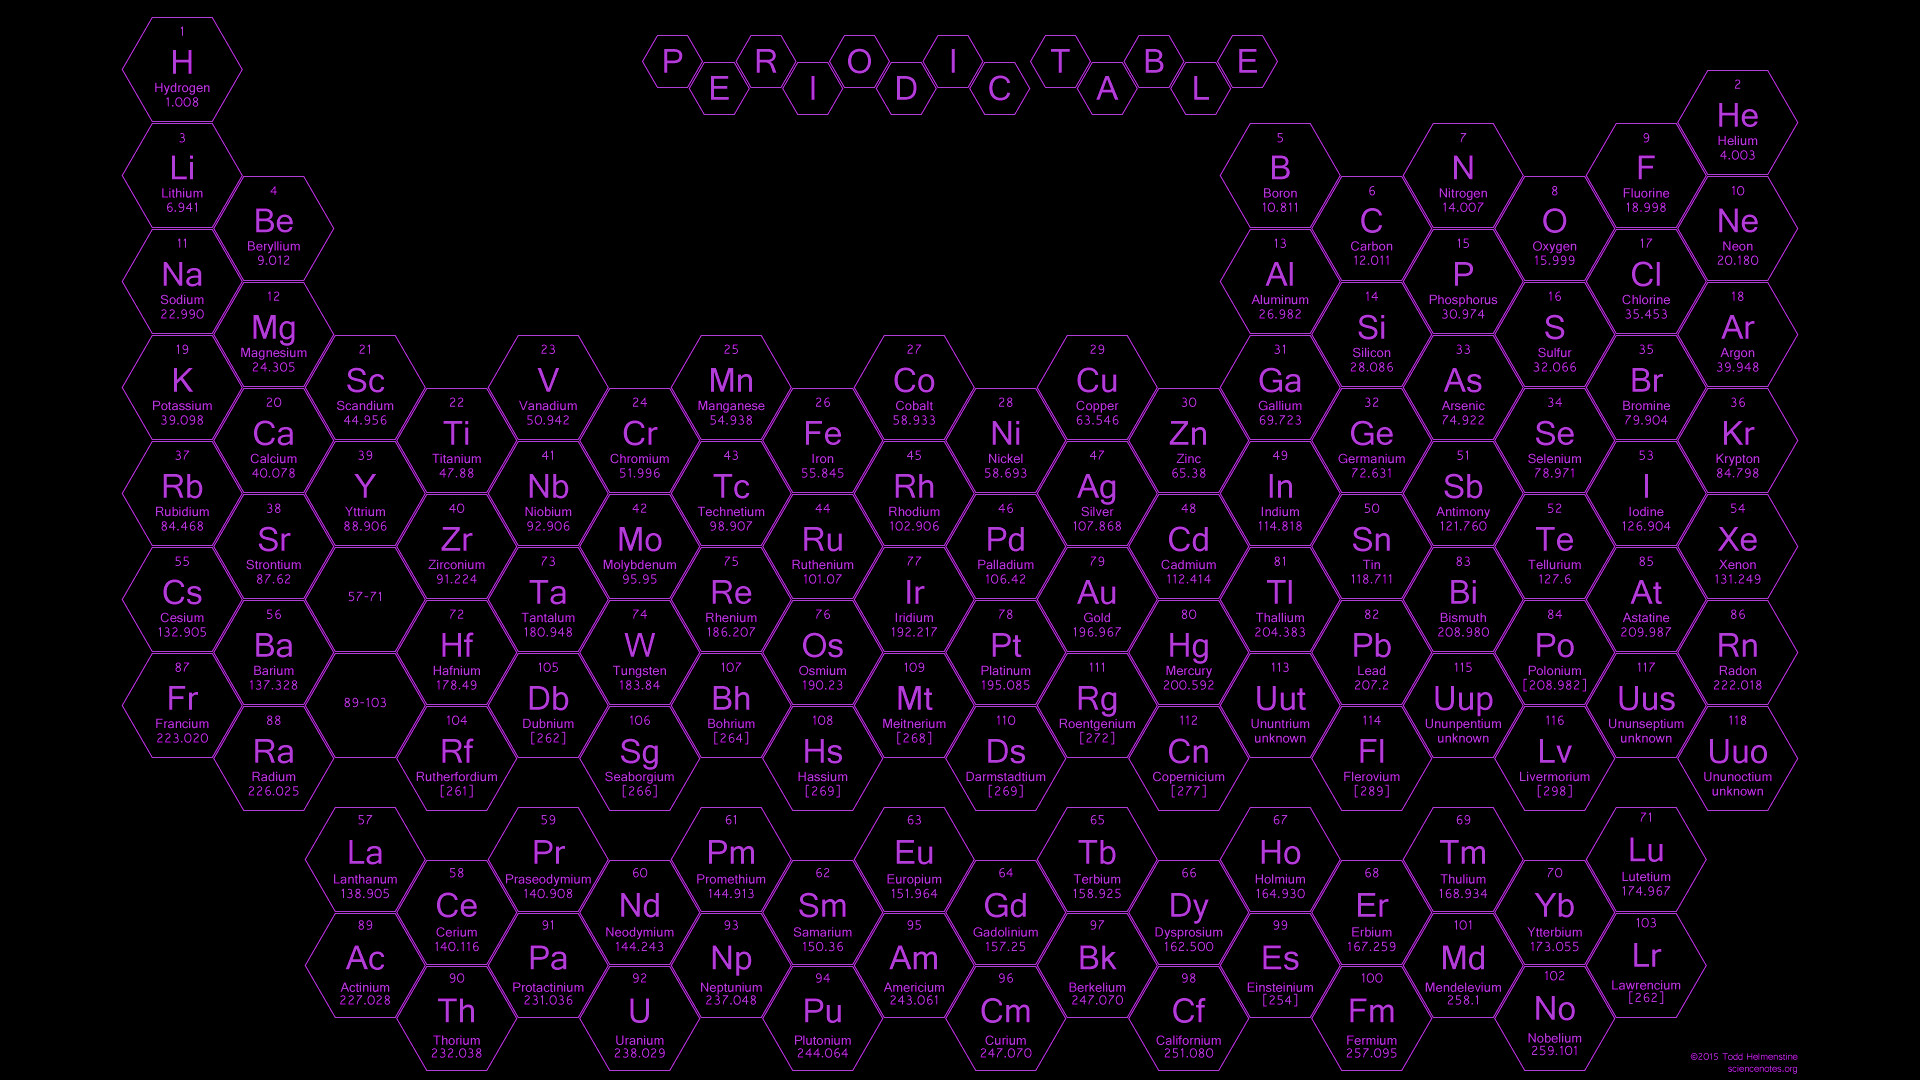 1920x1080 HD Periodic Table Wallpapers   Honeycomb Pattern